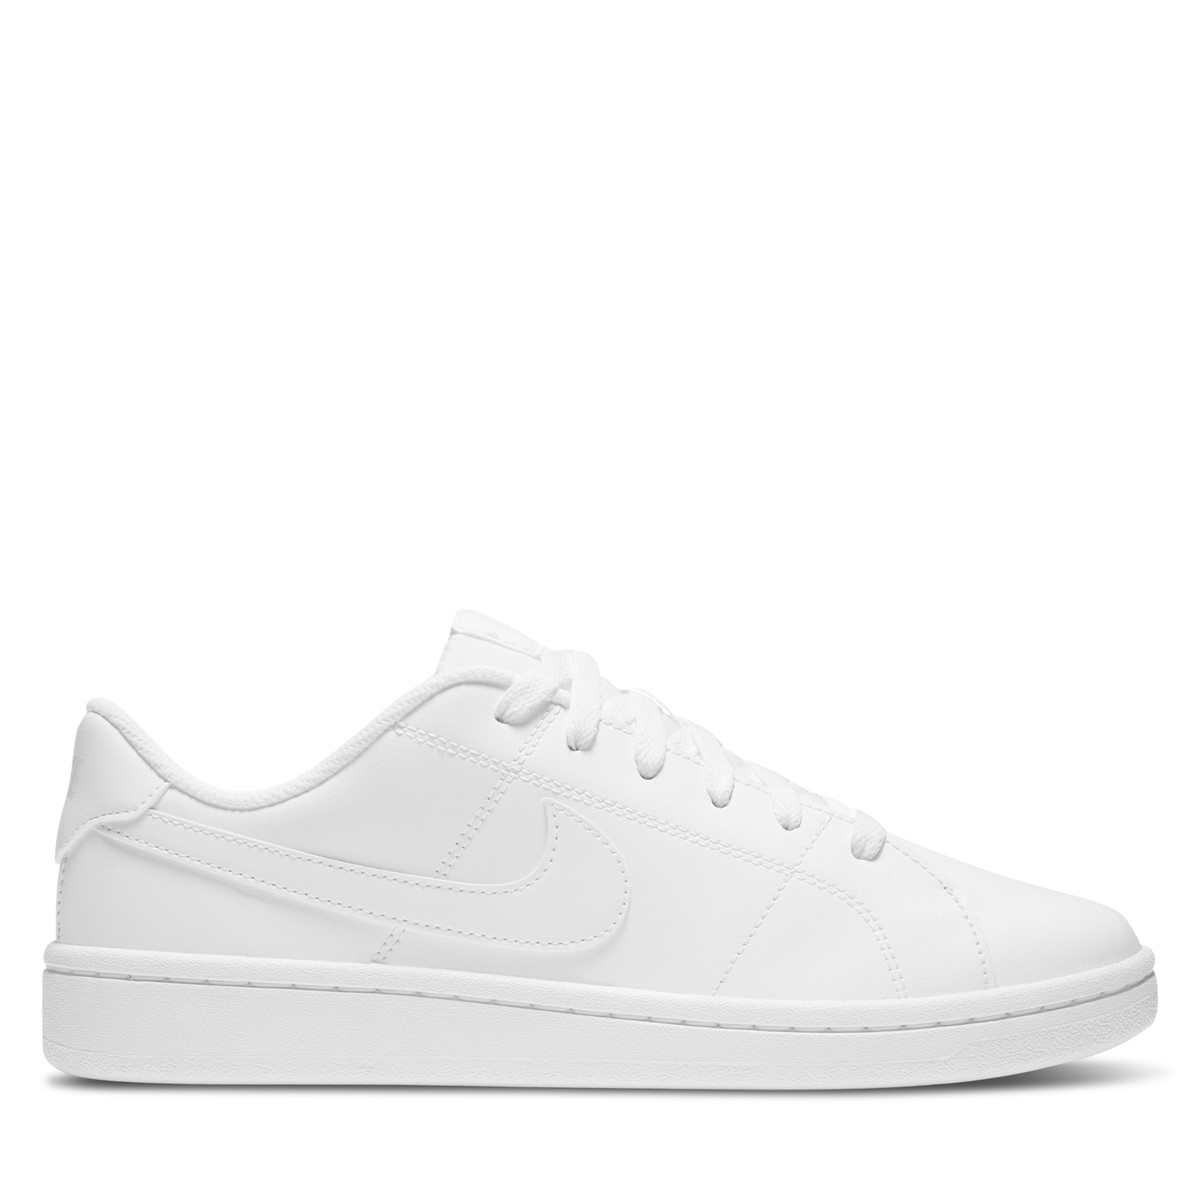 Men's Court Royale 2 Low Sneakers in White